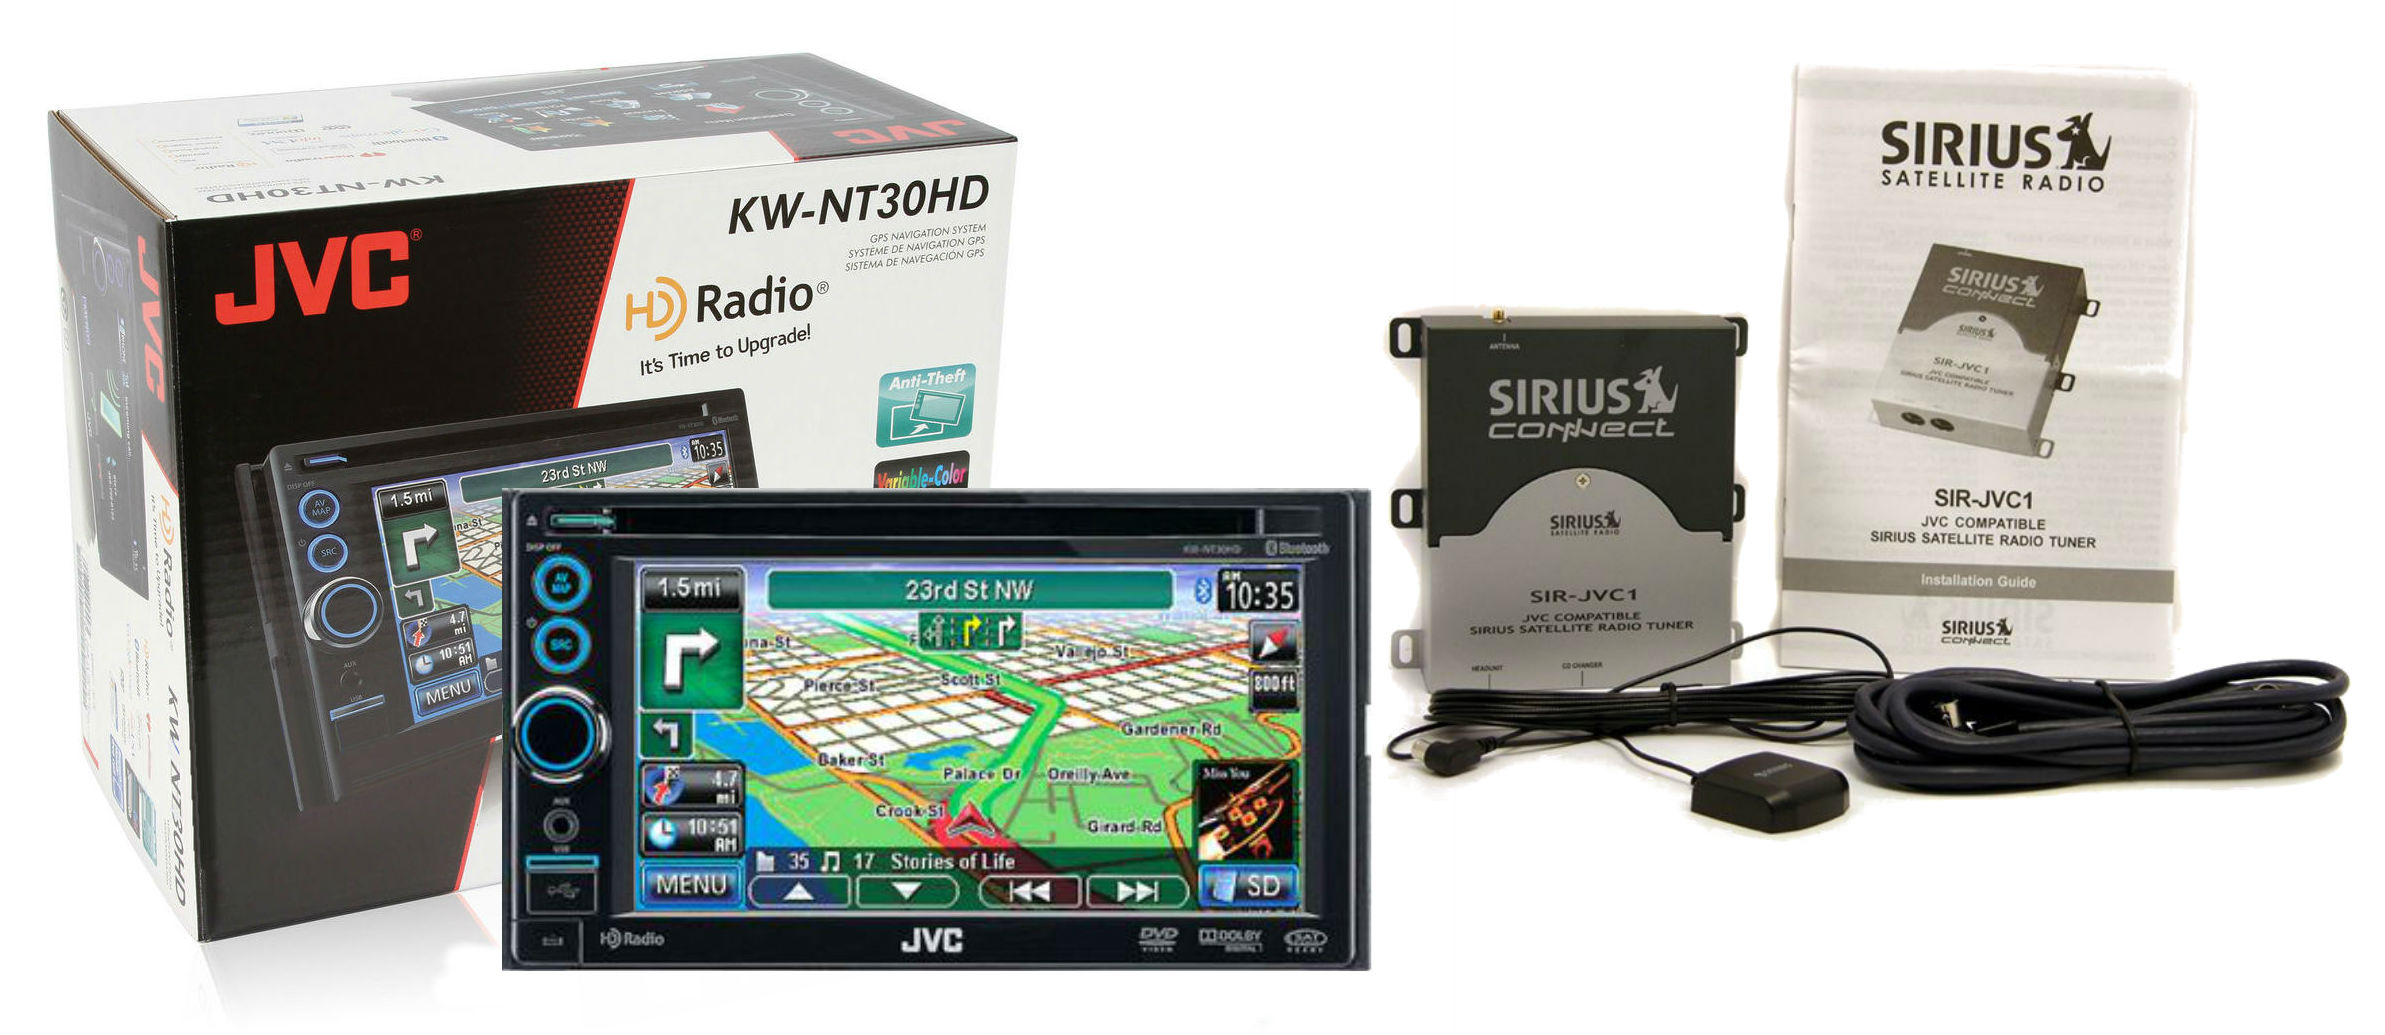 jvc radio update audio cable wiring diagrams kw nt30hd 6 1 quot navigation receiver w bluetooth sir